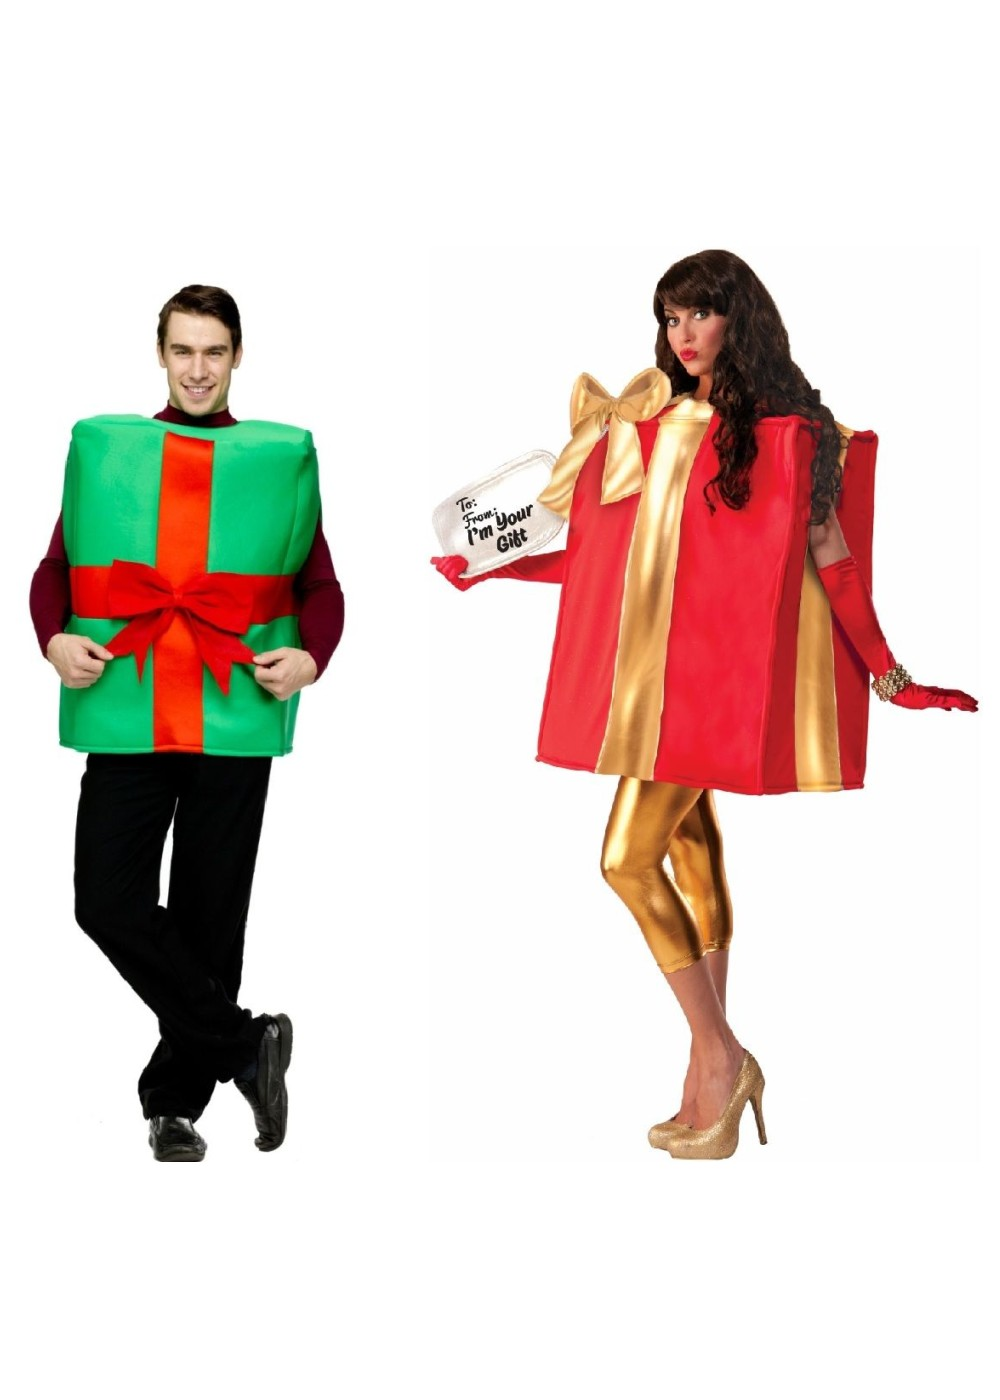 Christmas Gifts Couples Costumes  sc 1 st  Wonder Costumes & Christmas Gifts Couples Costumes - Holiday Costumes